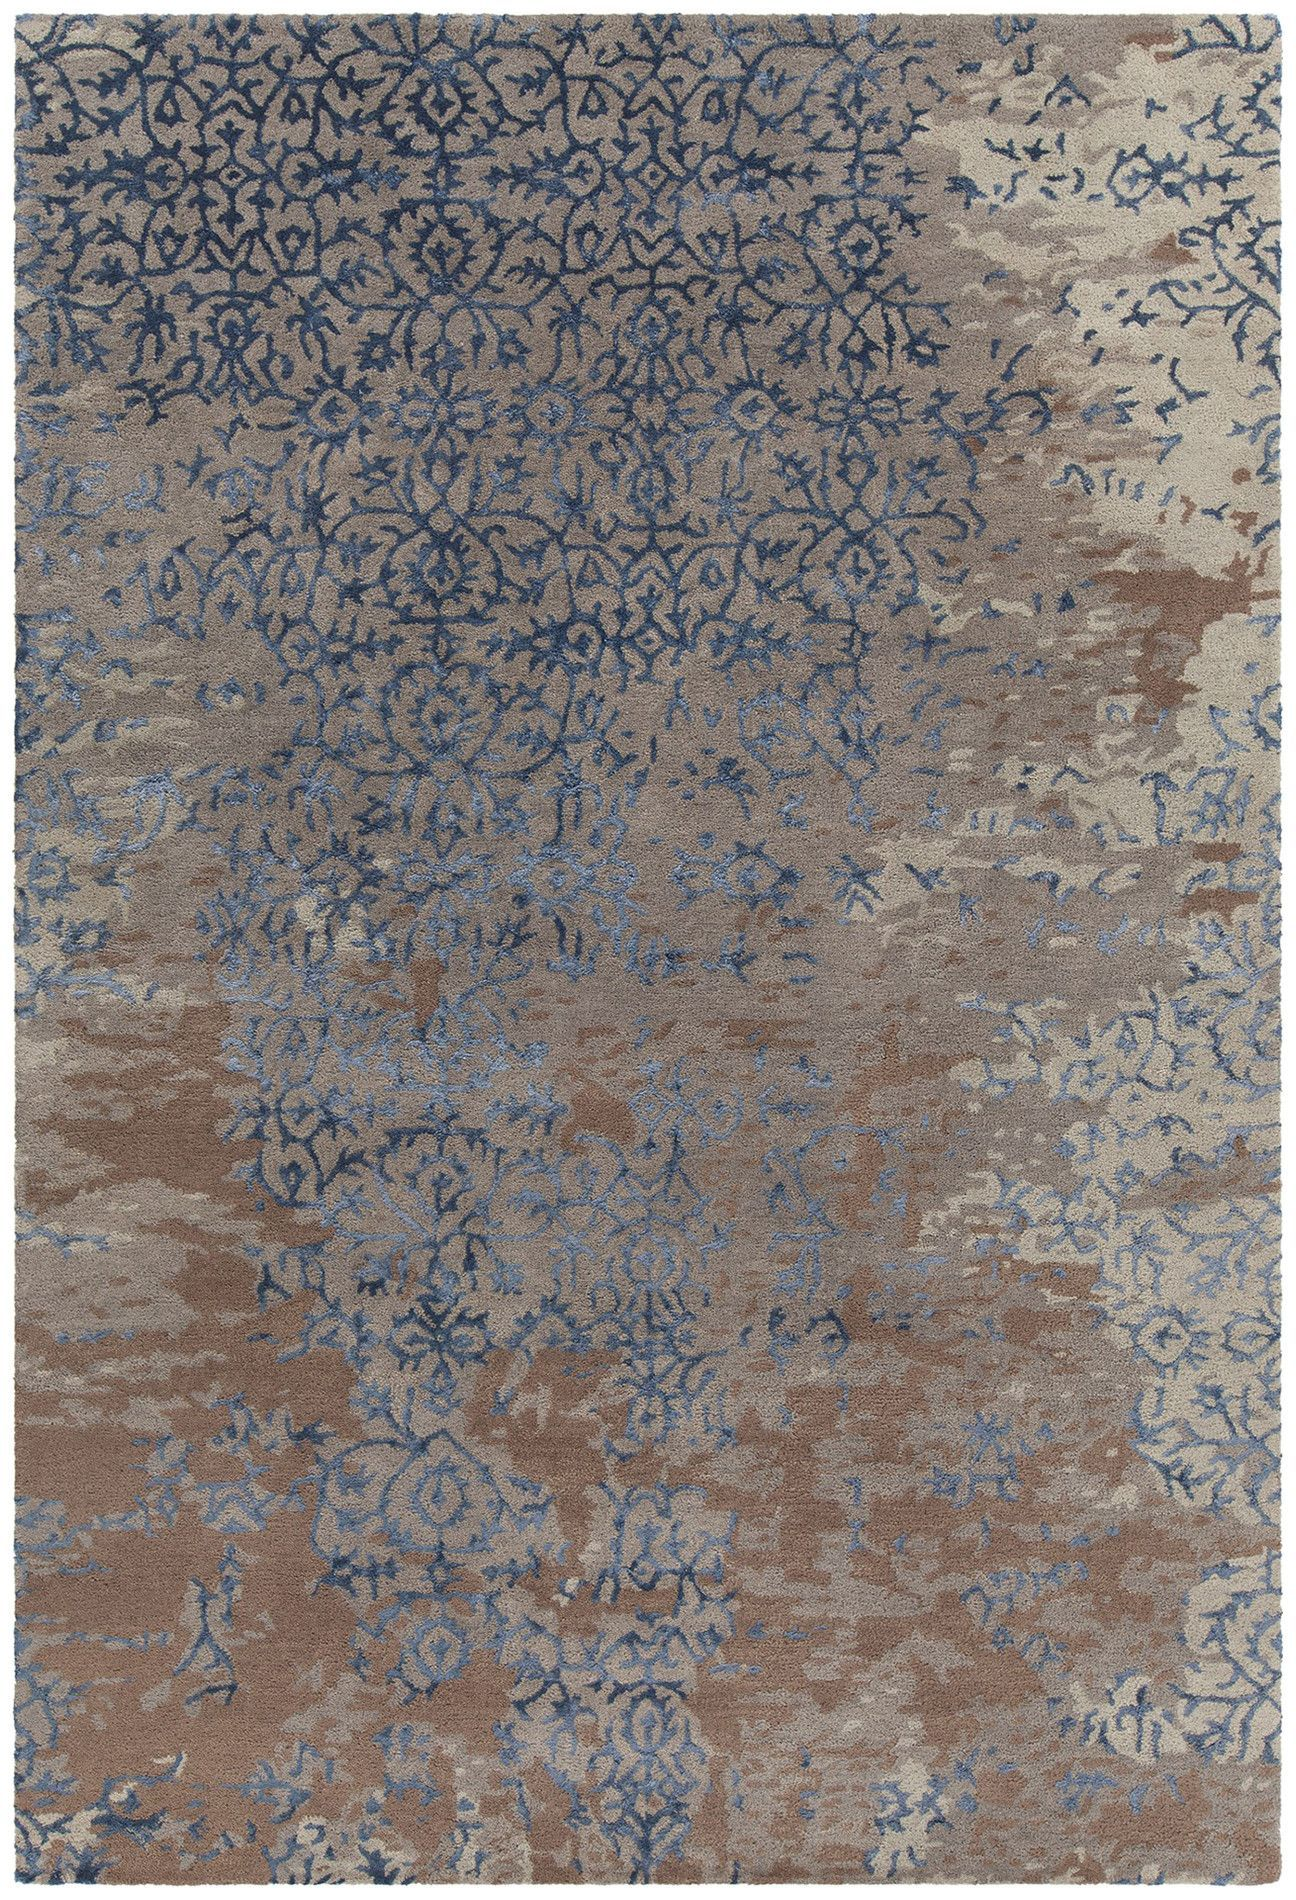 Rupec Patterned Rectangular Contemporary Area Rug Grey Blue Brown Contemporary Area Rugs Brown Area Rugs Area Rugs